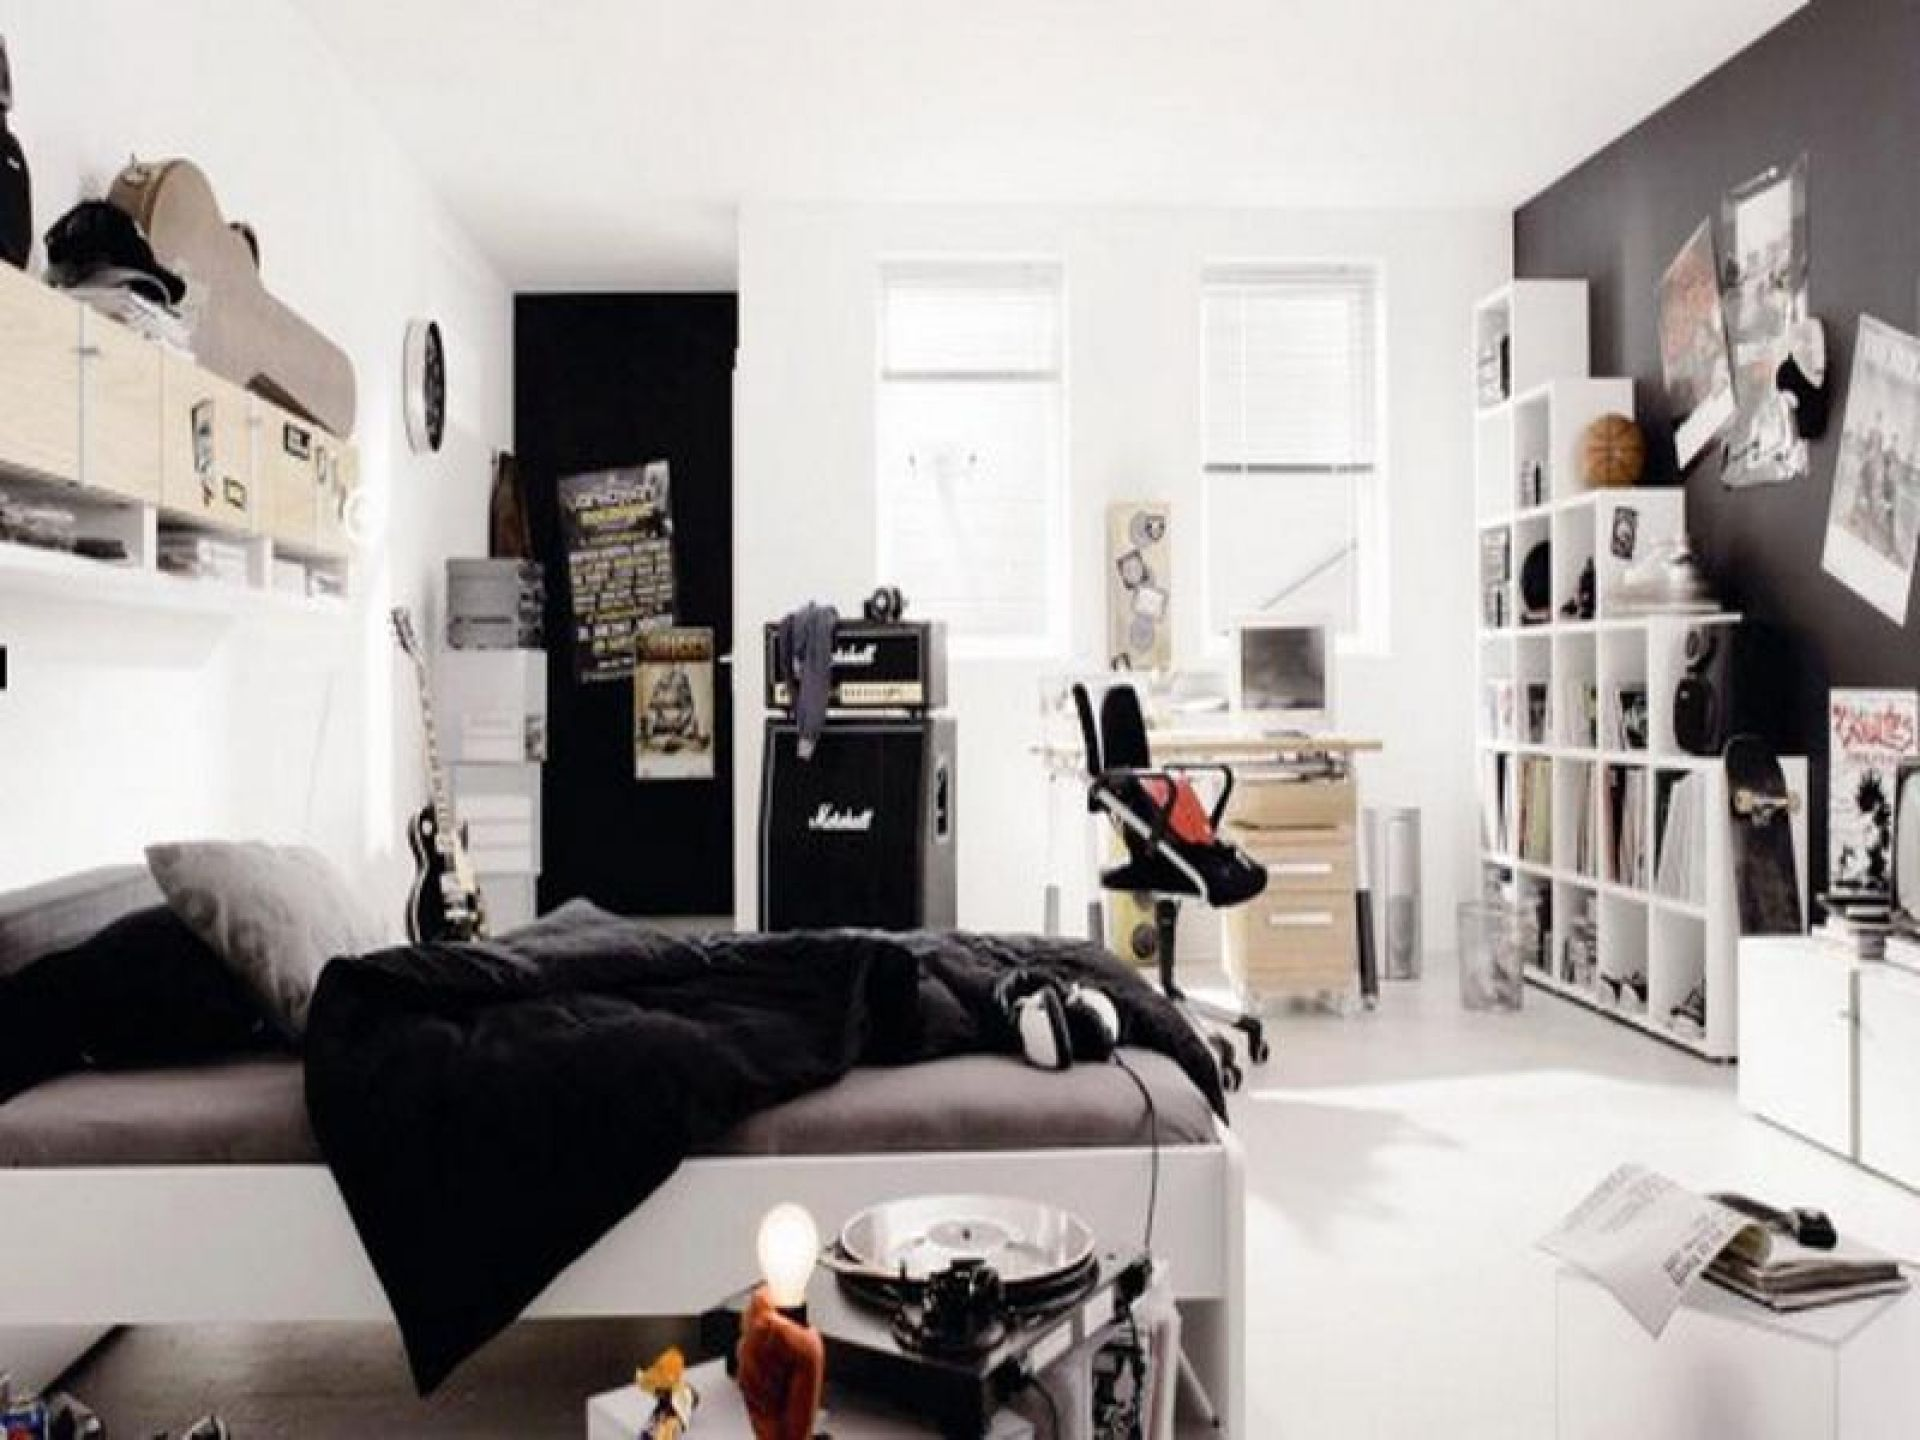 Ordinaire Charming Hipster Bedroom For Modern Bedroom Design Ideas: Captivating  Hipsteru2026